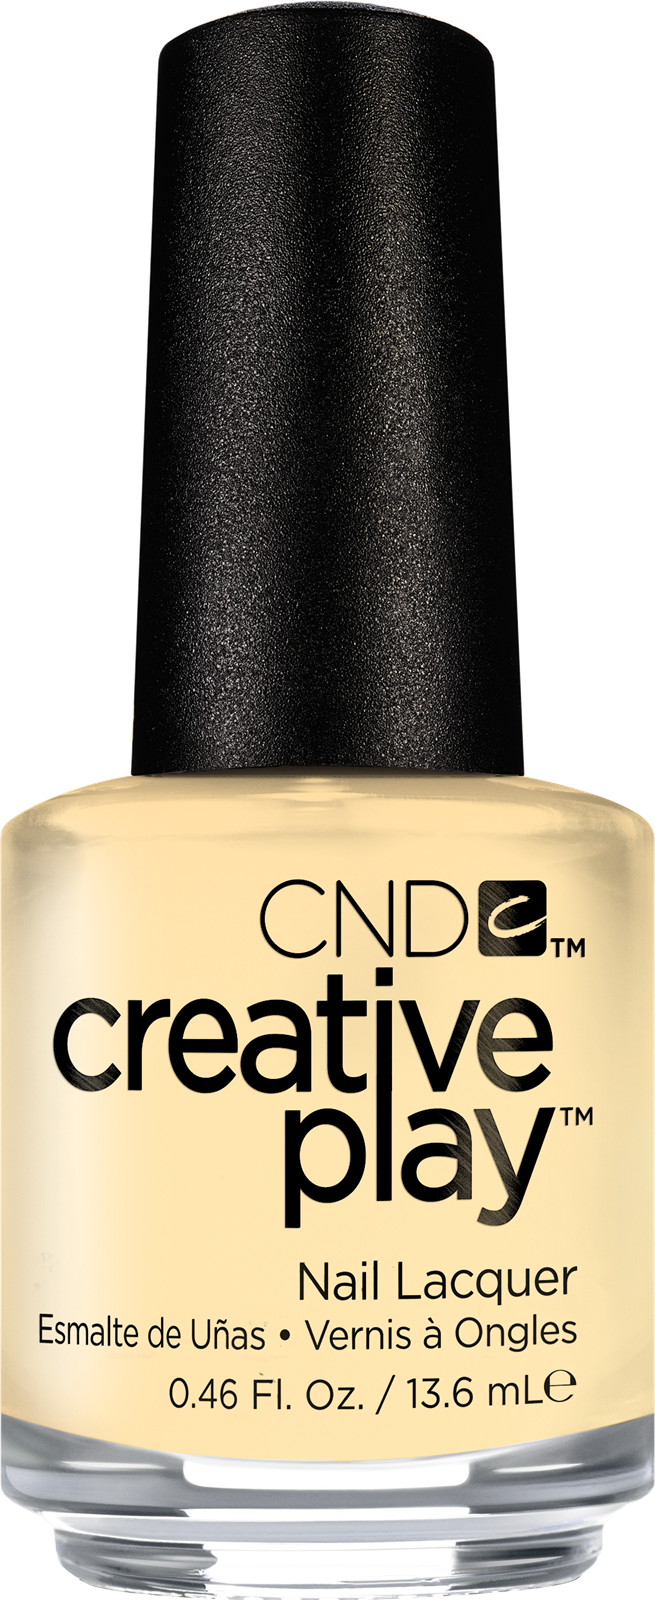 Afbeelding van CND ™ Creative Play Bananas For You